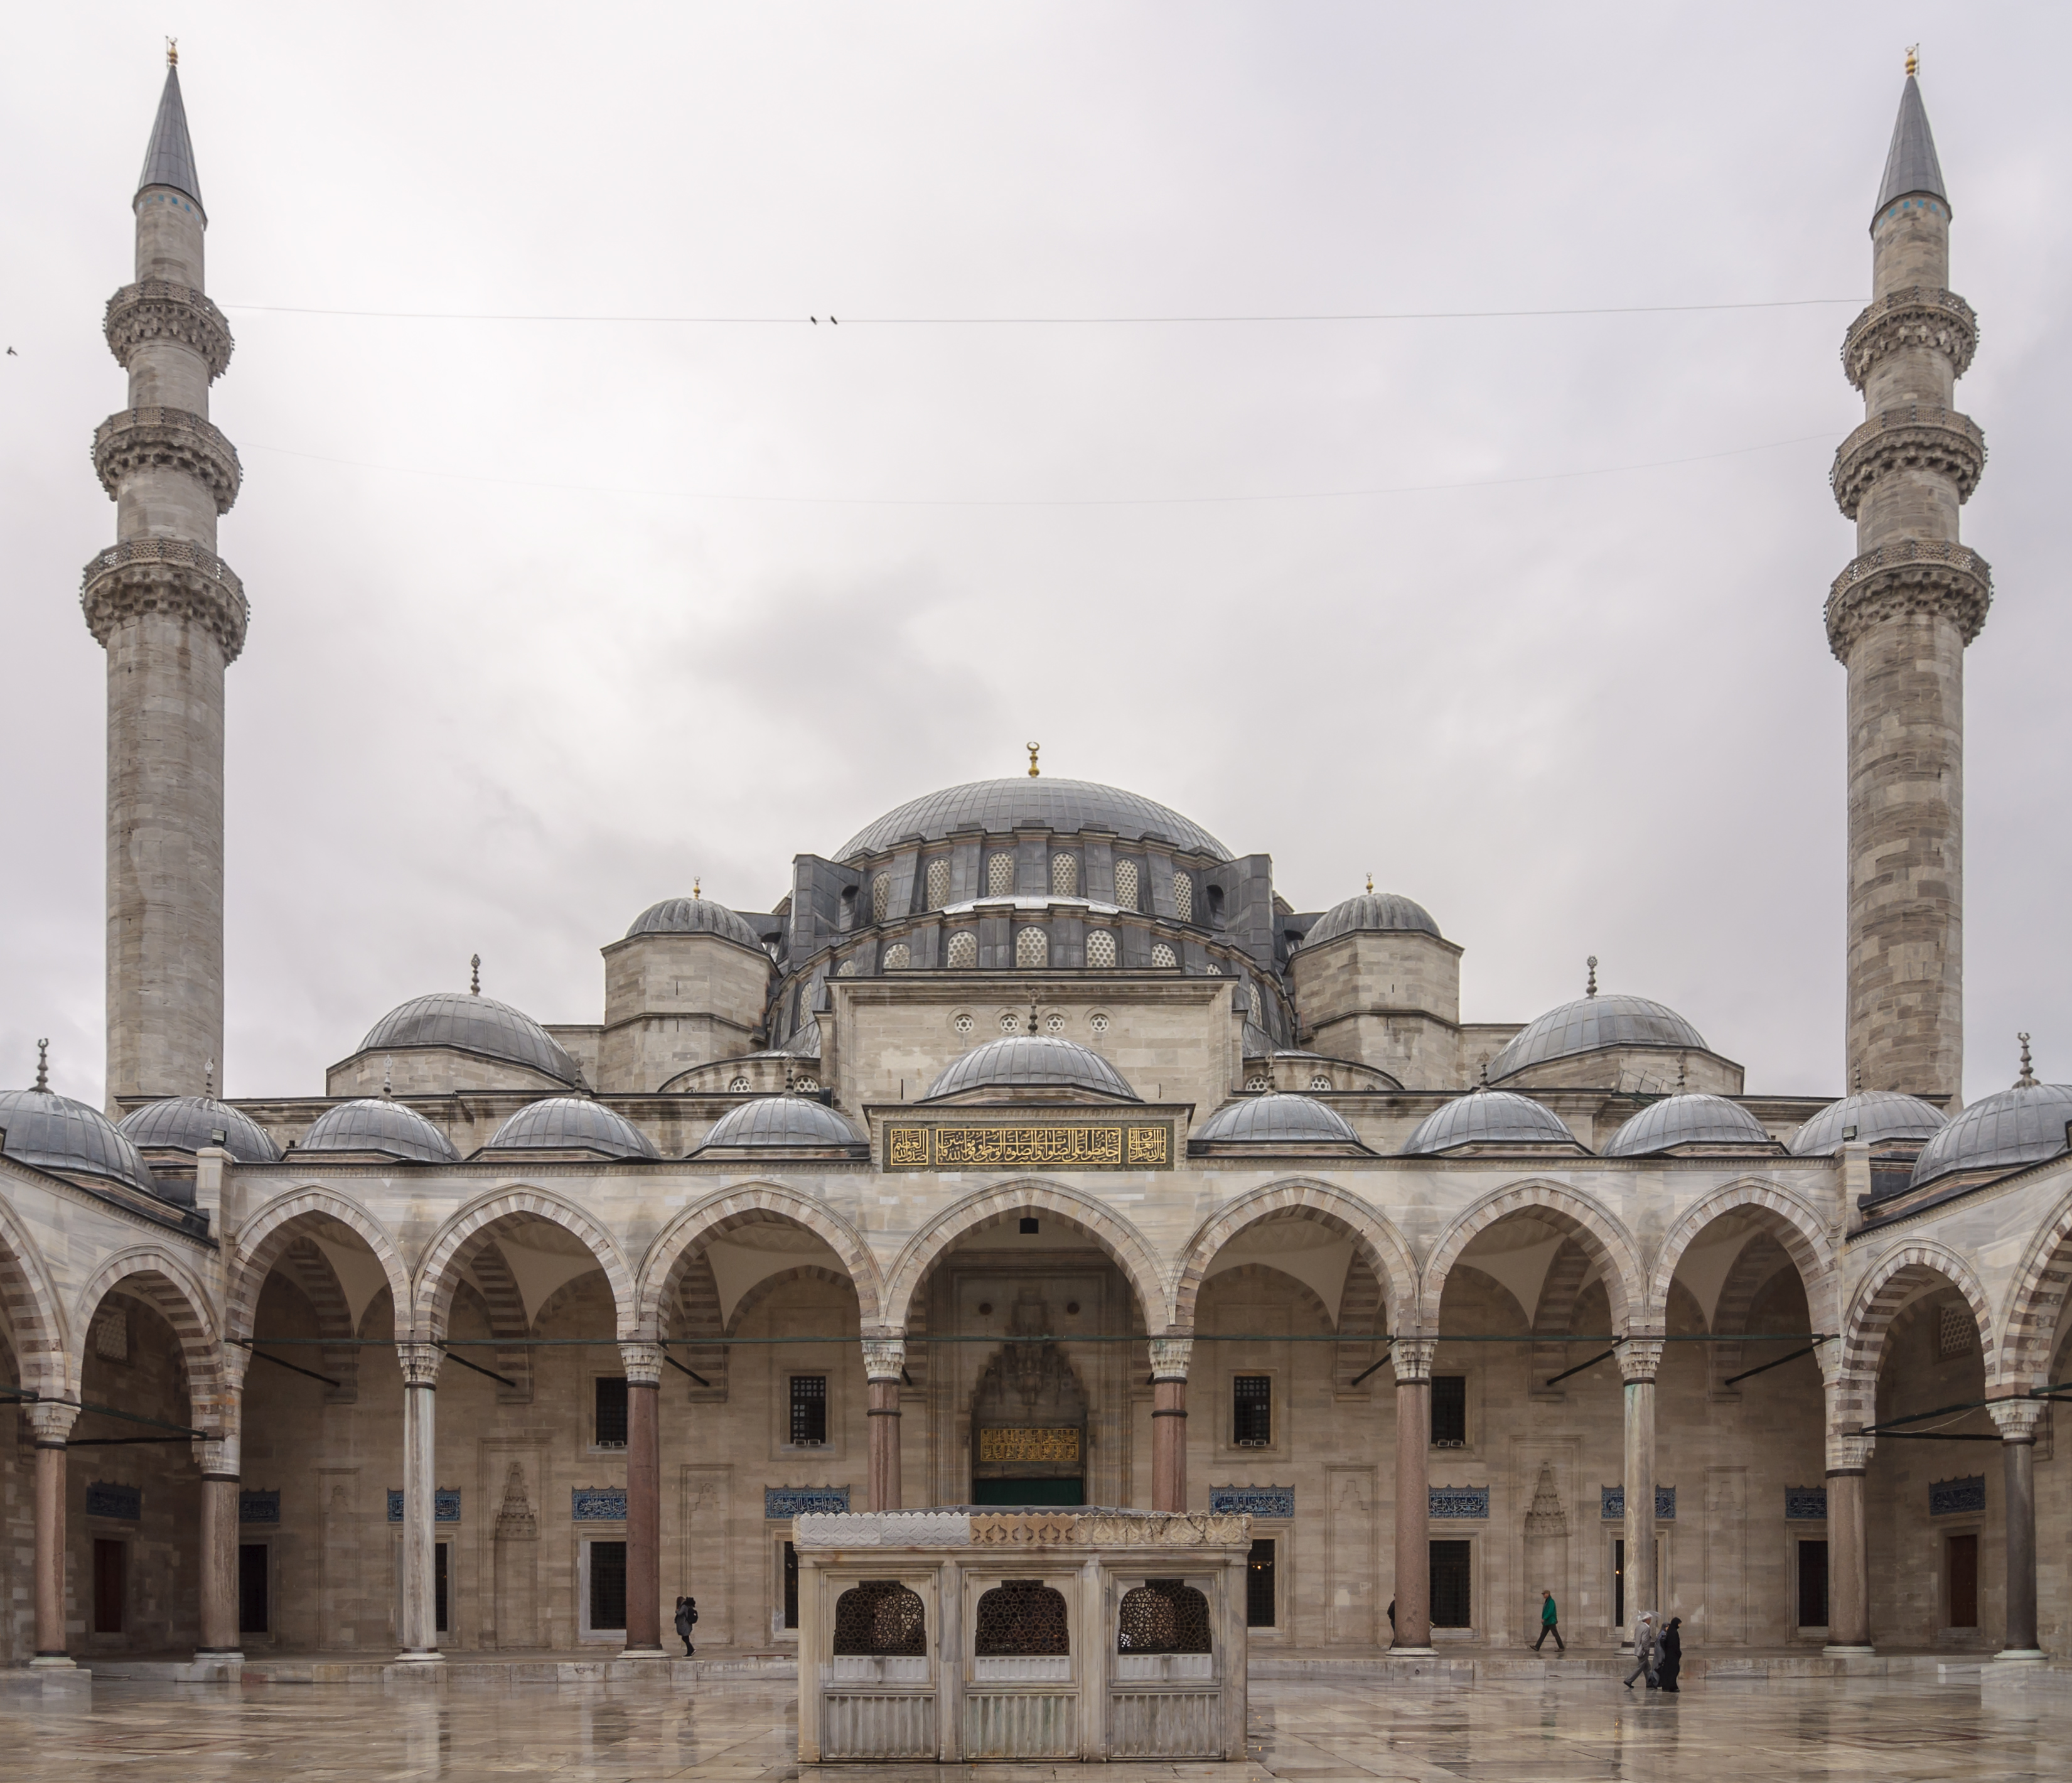 File:Cour mosquee Suleymaniye Istanbul.jpg - Wikimedia Commons